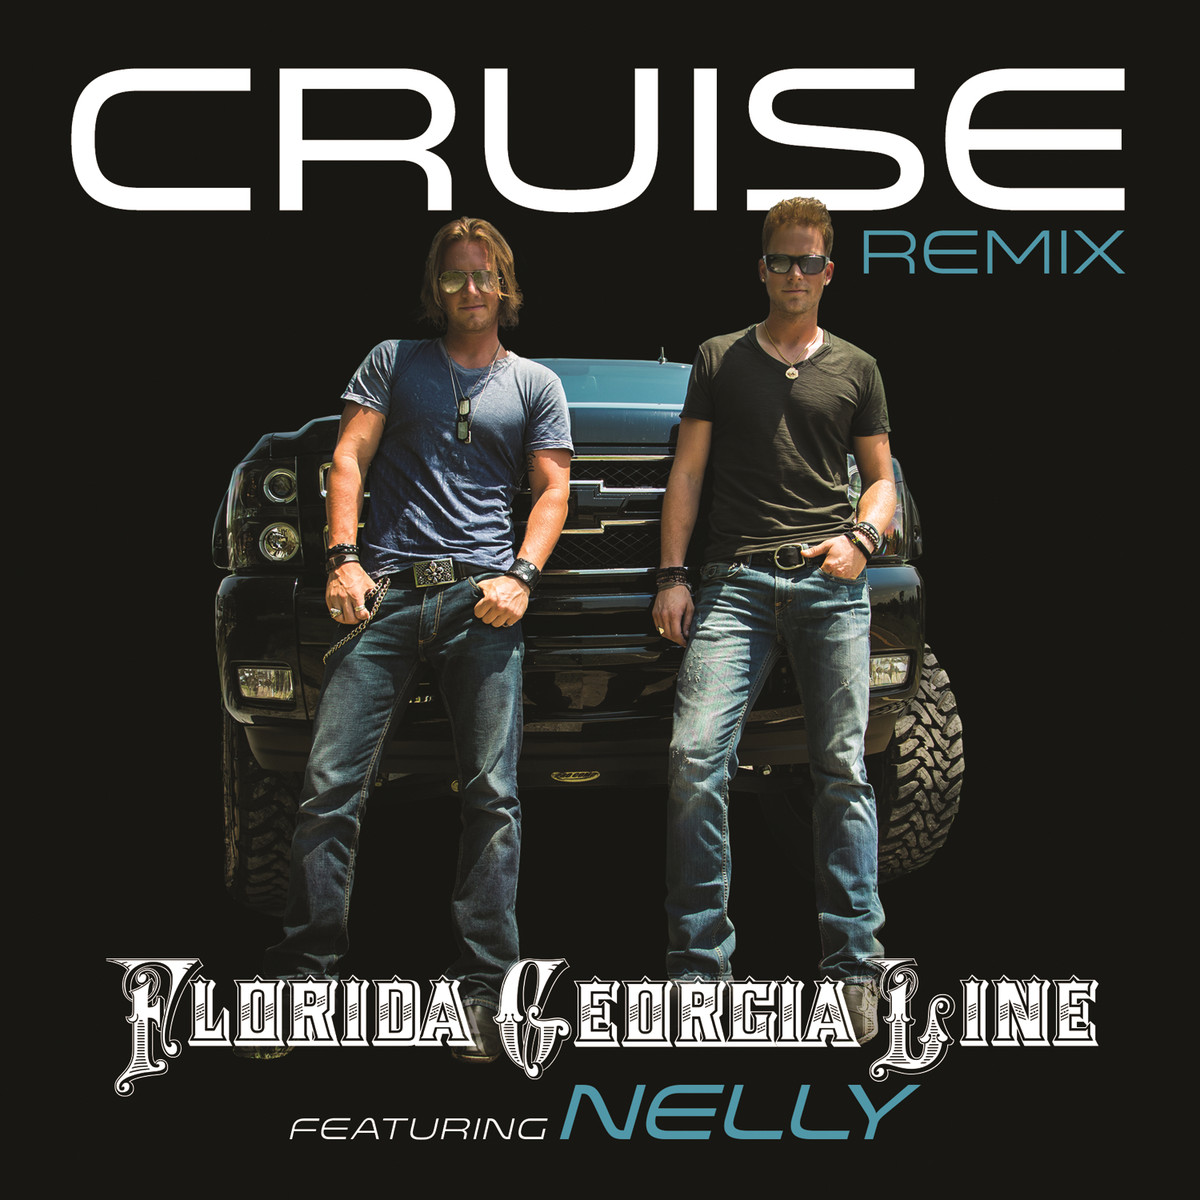 Florida Georgia Line - Cruise - New Country Songs